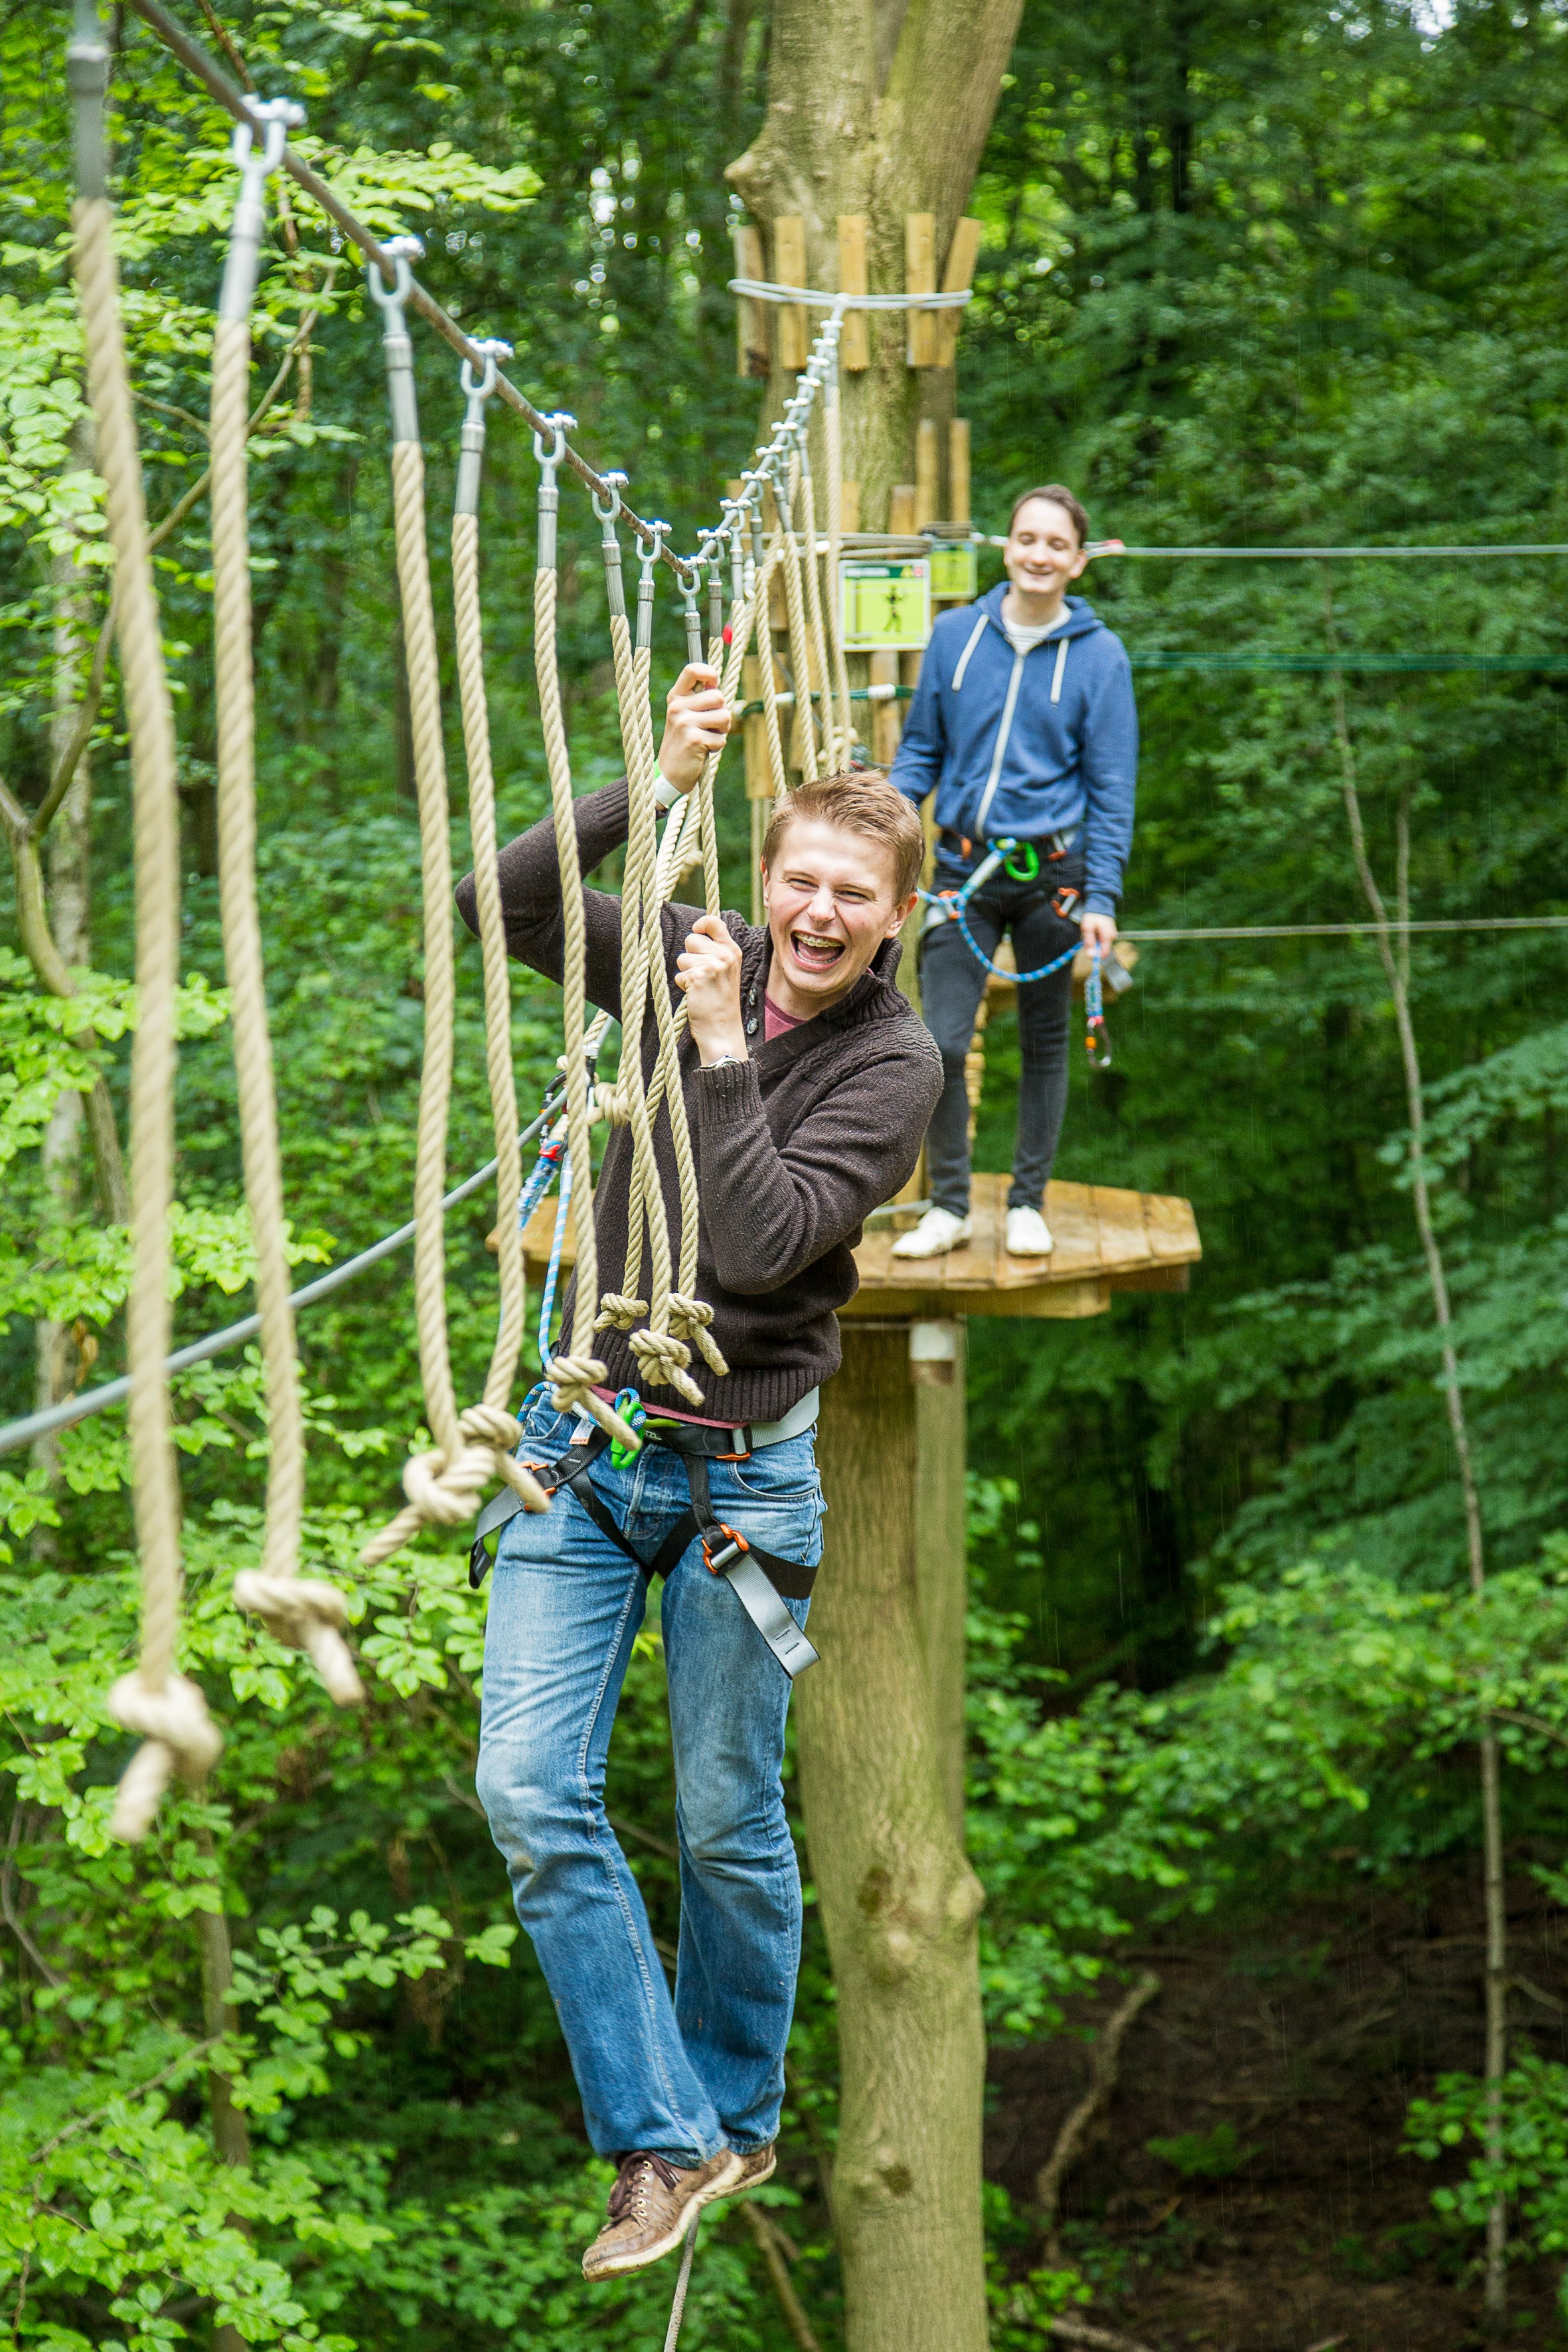 Brand New Go Ape Tree Top Adventure At Chessington World Of Adventures Resort!